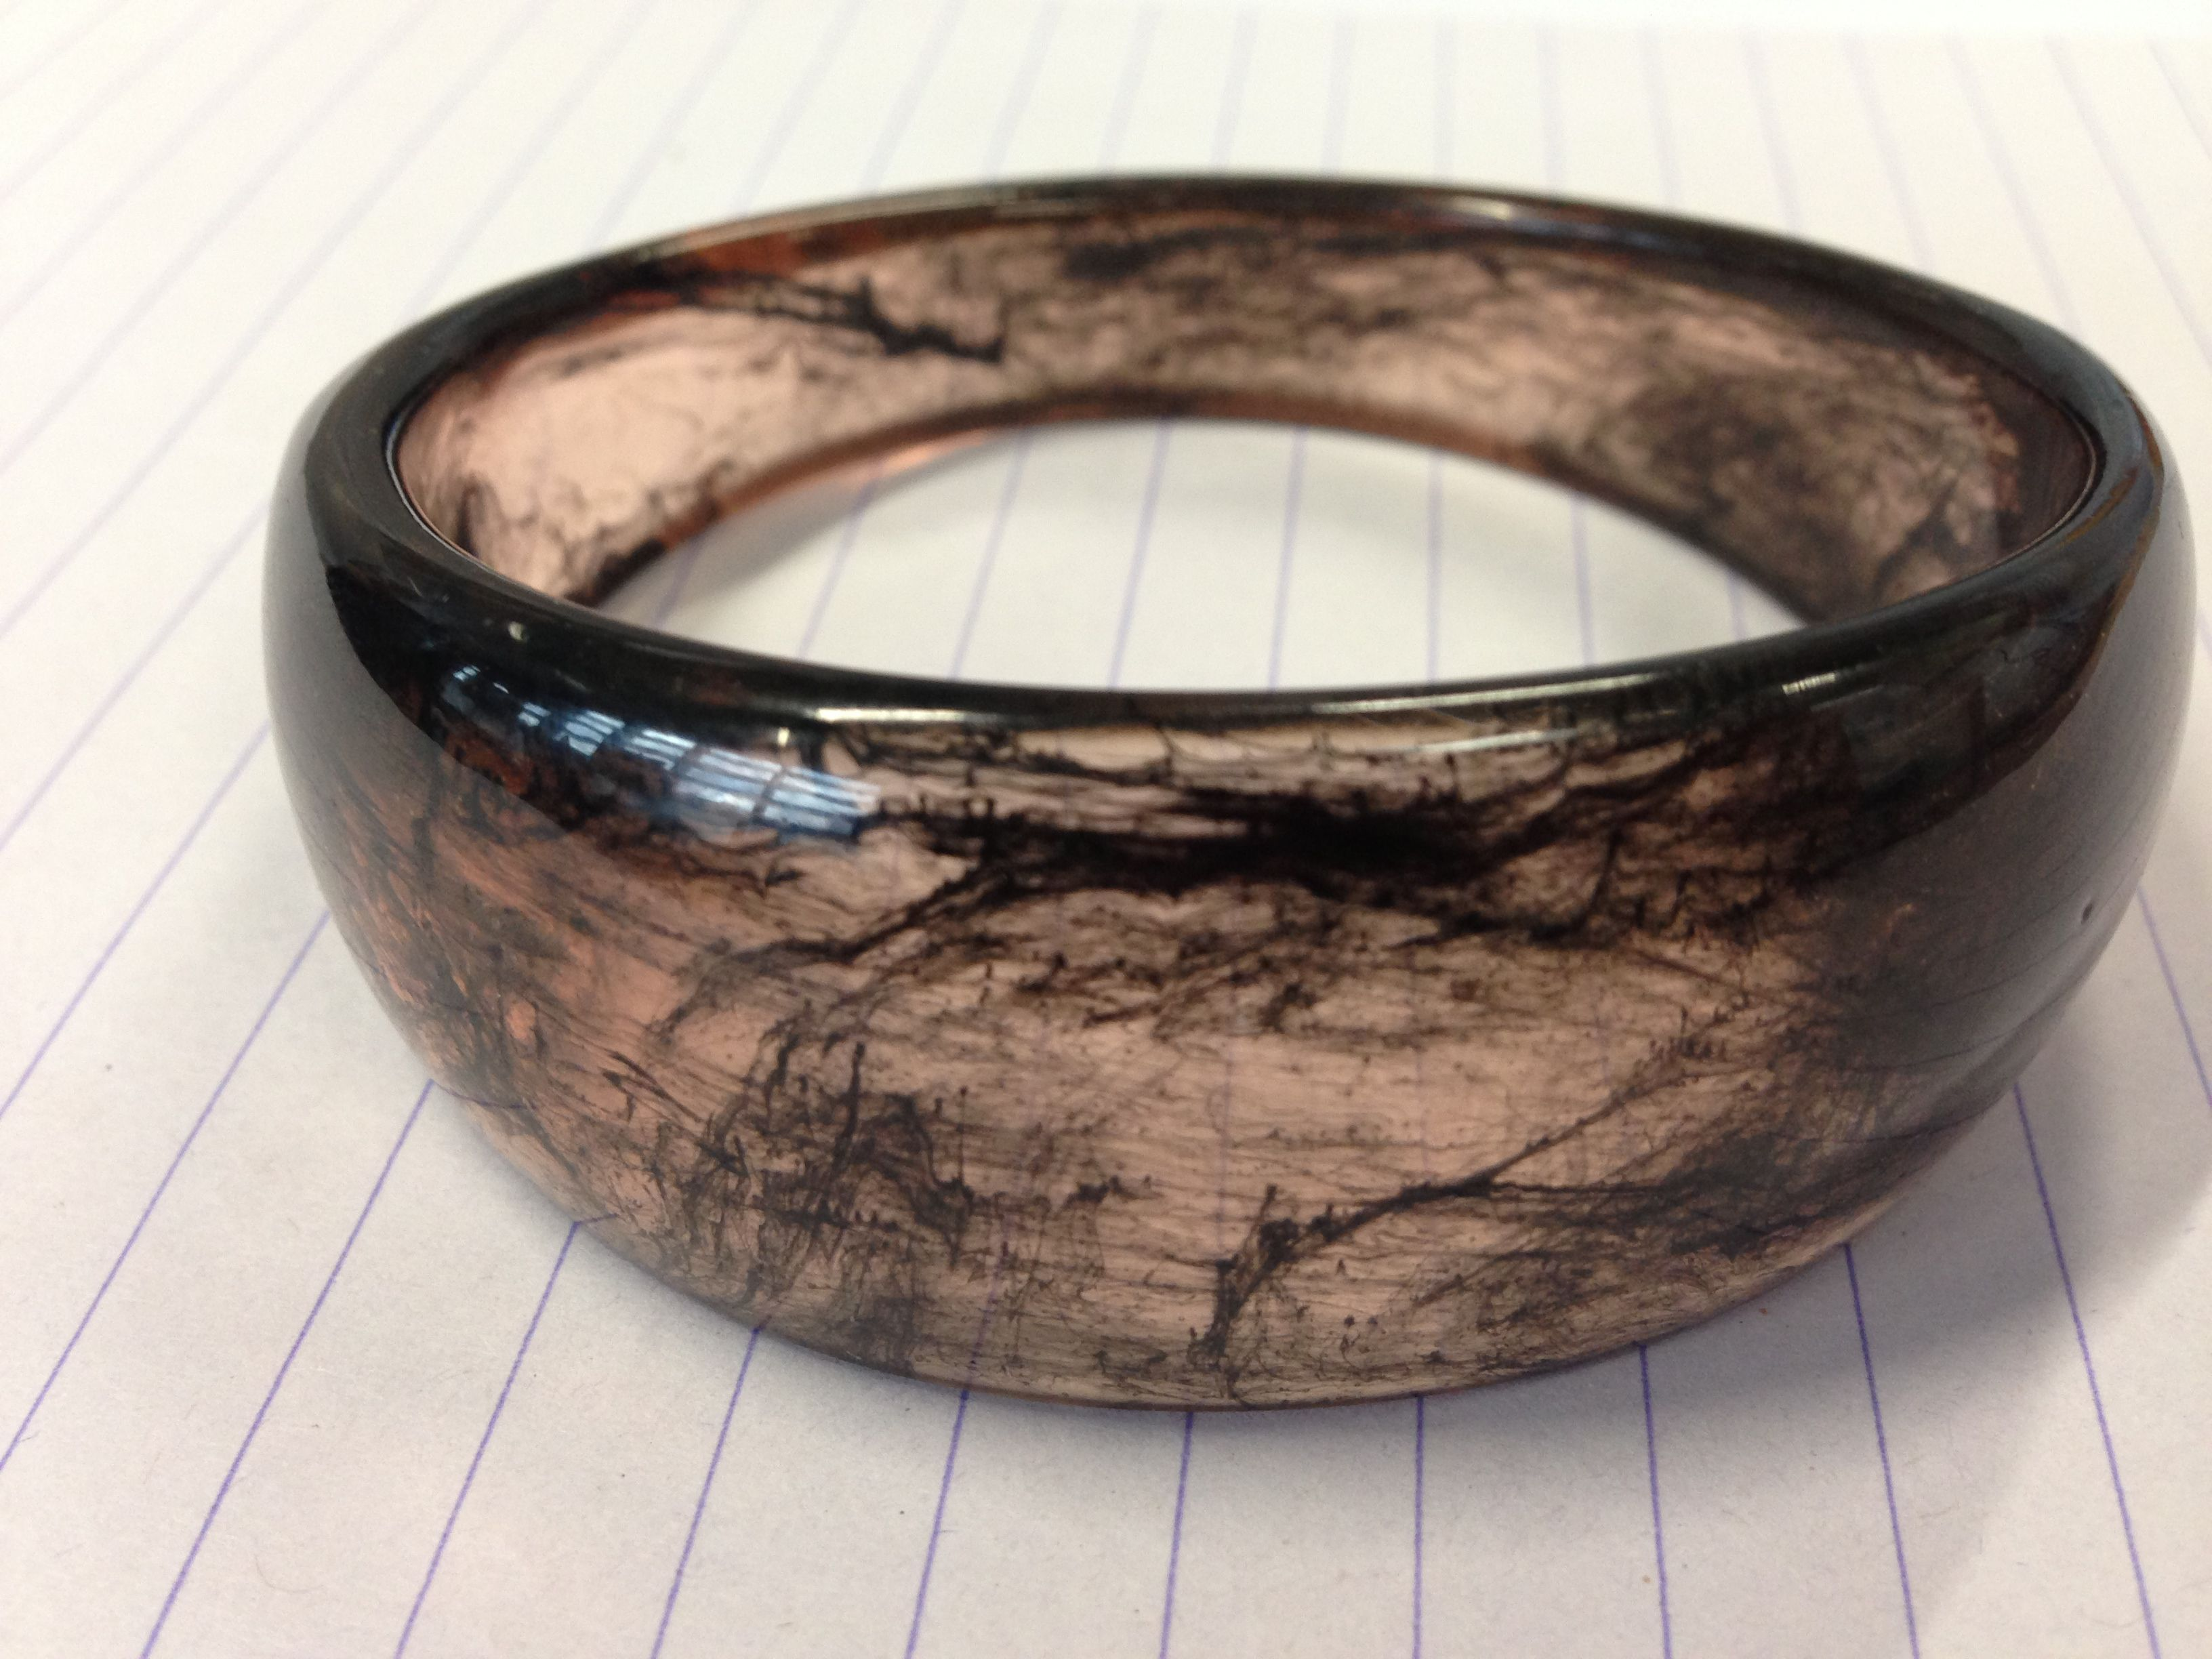 Resin Black swirl bangle by Summerification